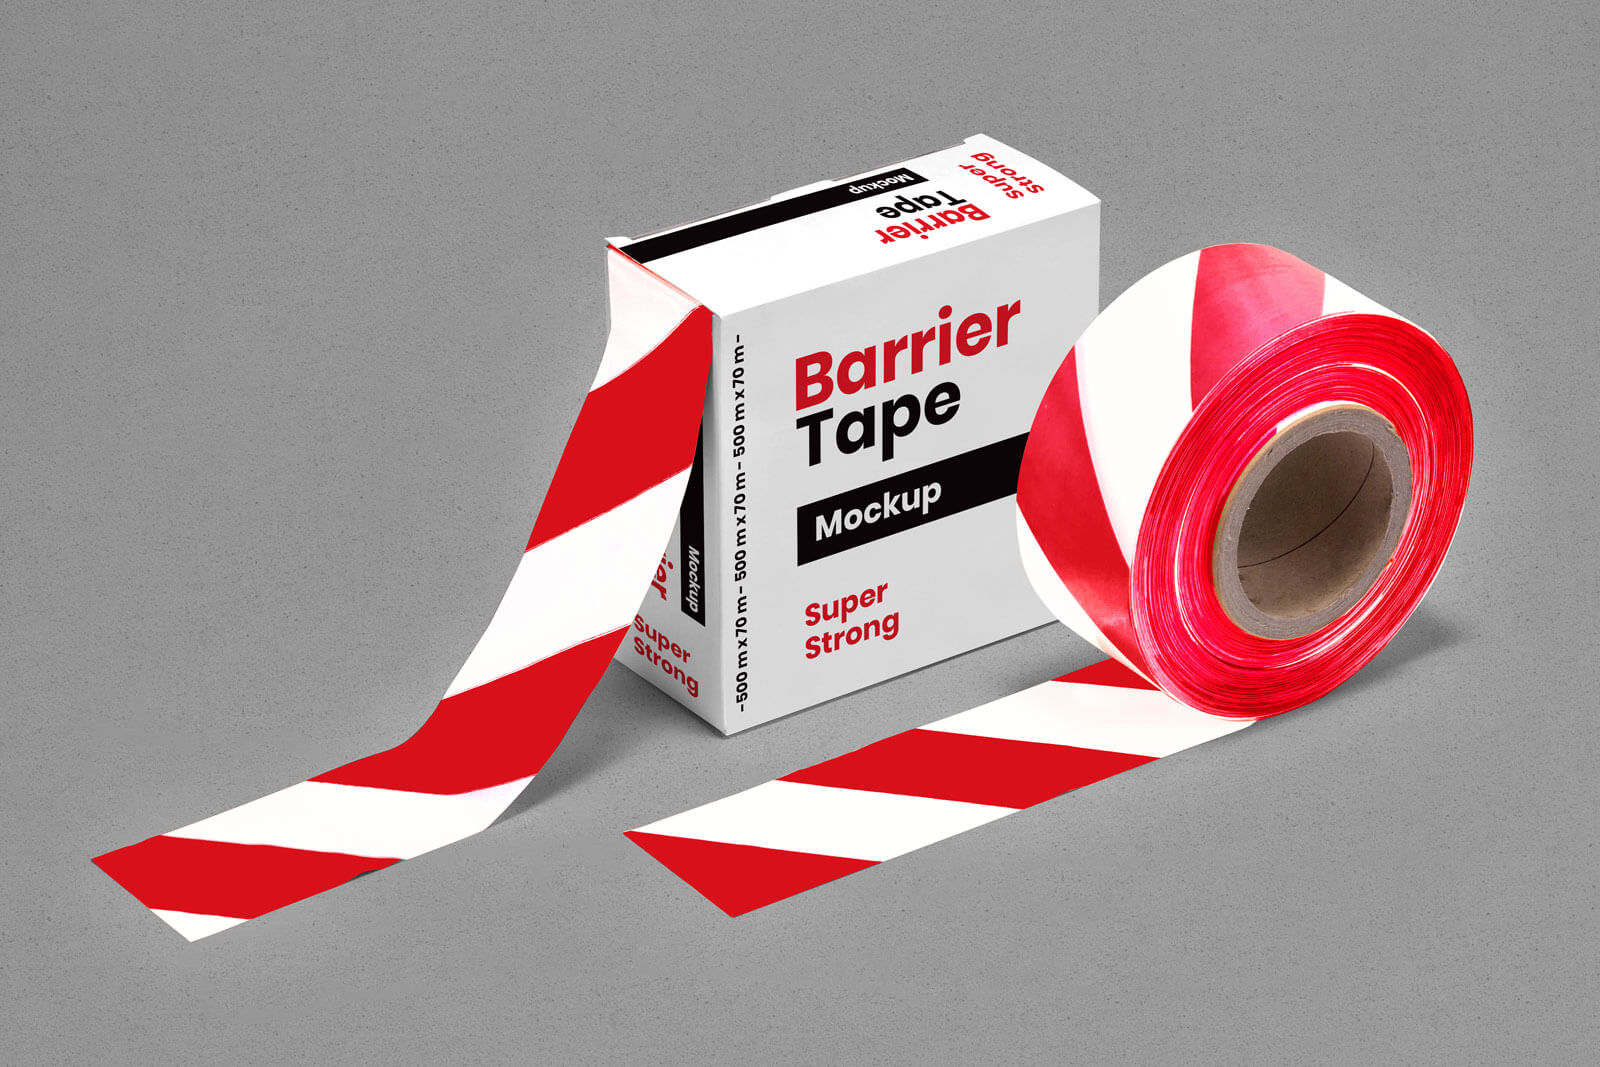 Free-Barrier-Barricade-Tape-Box-Mockup-PSD-2